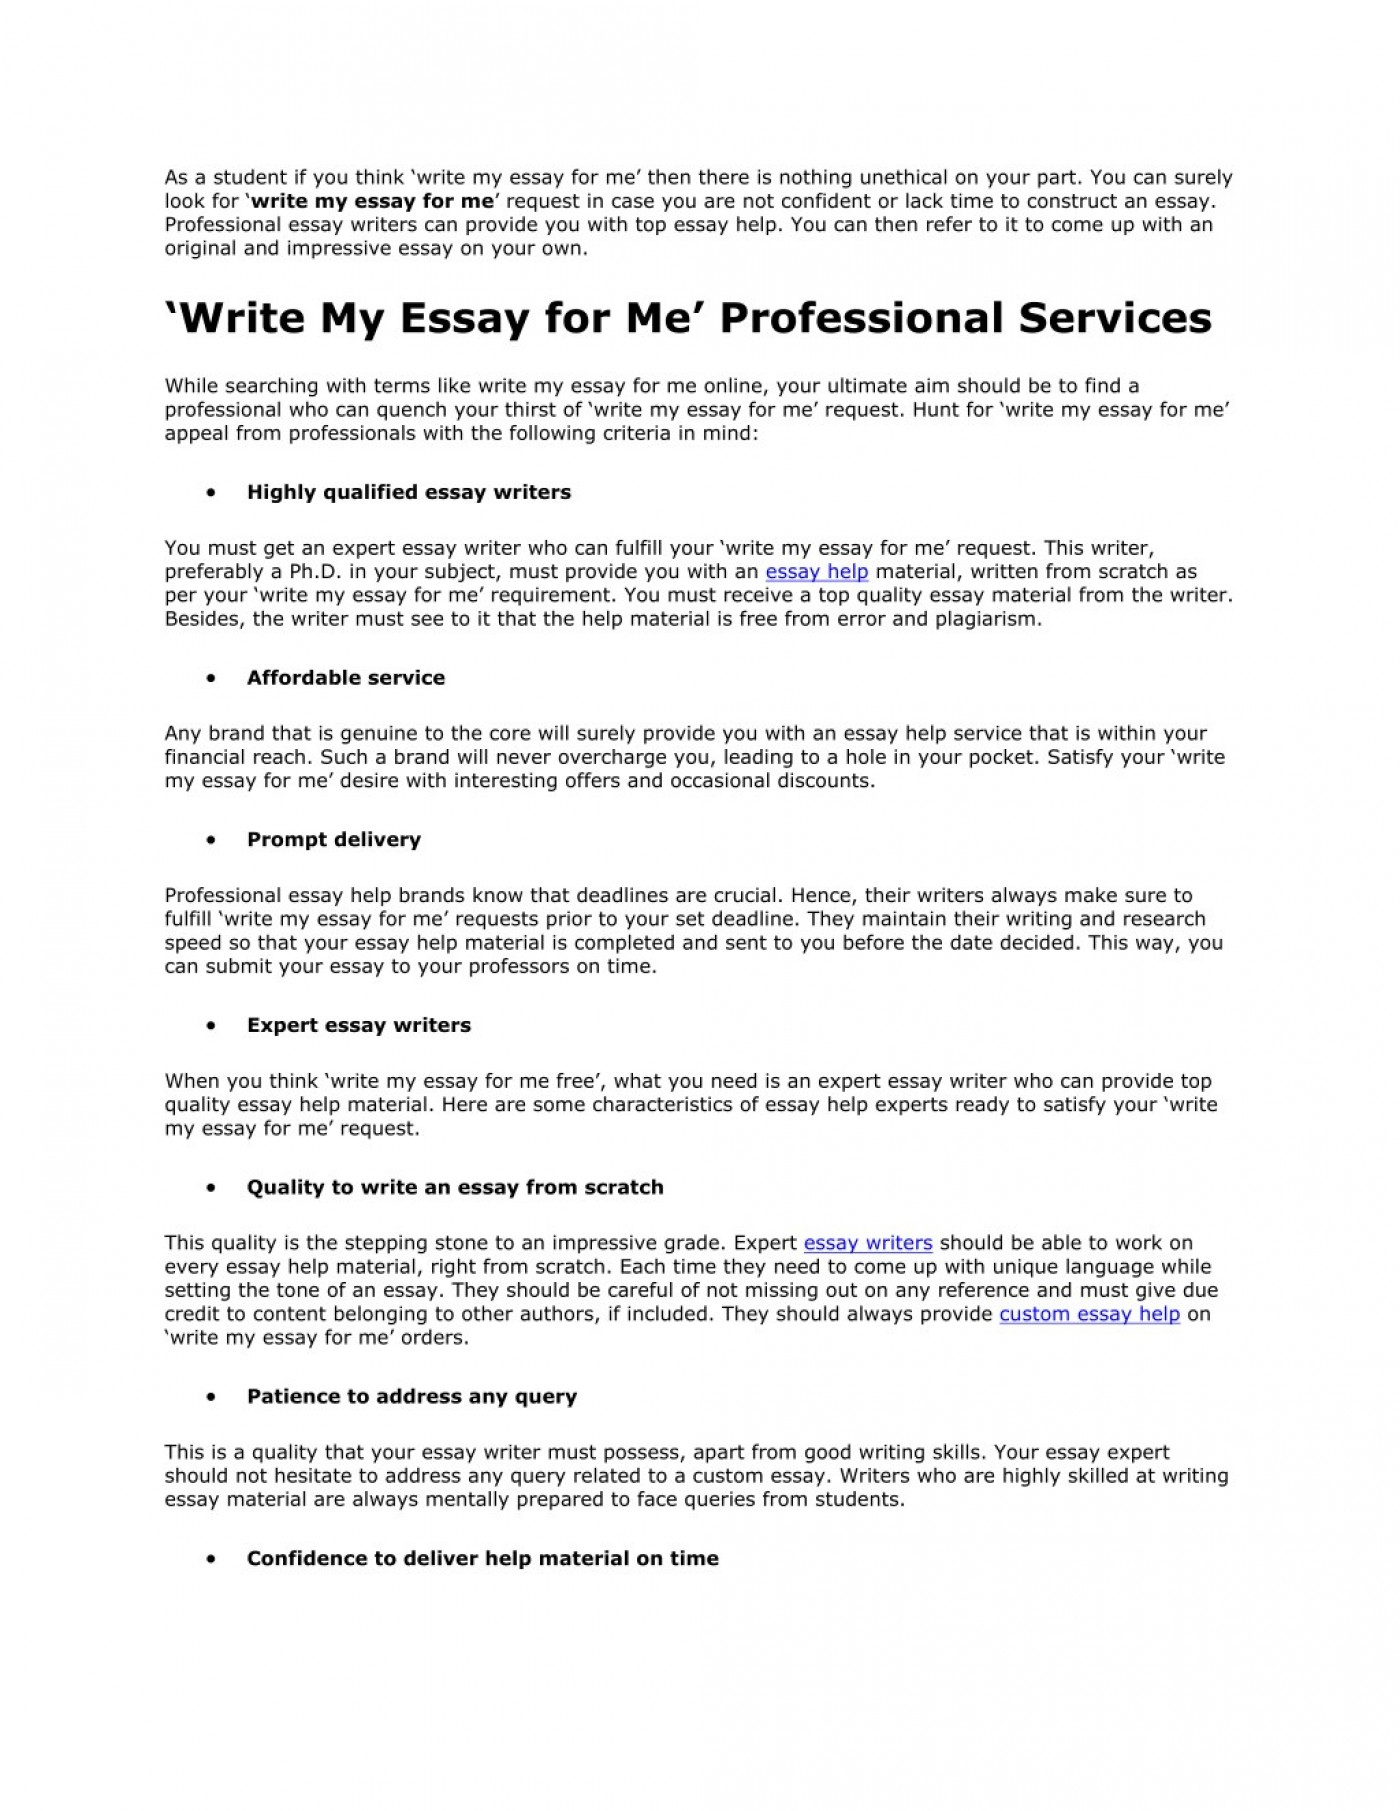 017 Write My Essay For Me Example As Student If You Think Surprising Please Canada Generator 1400